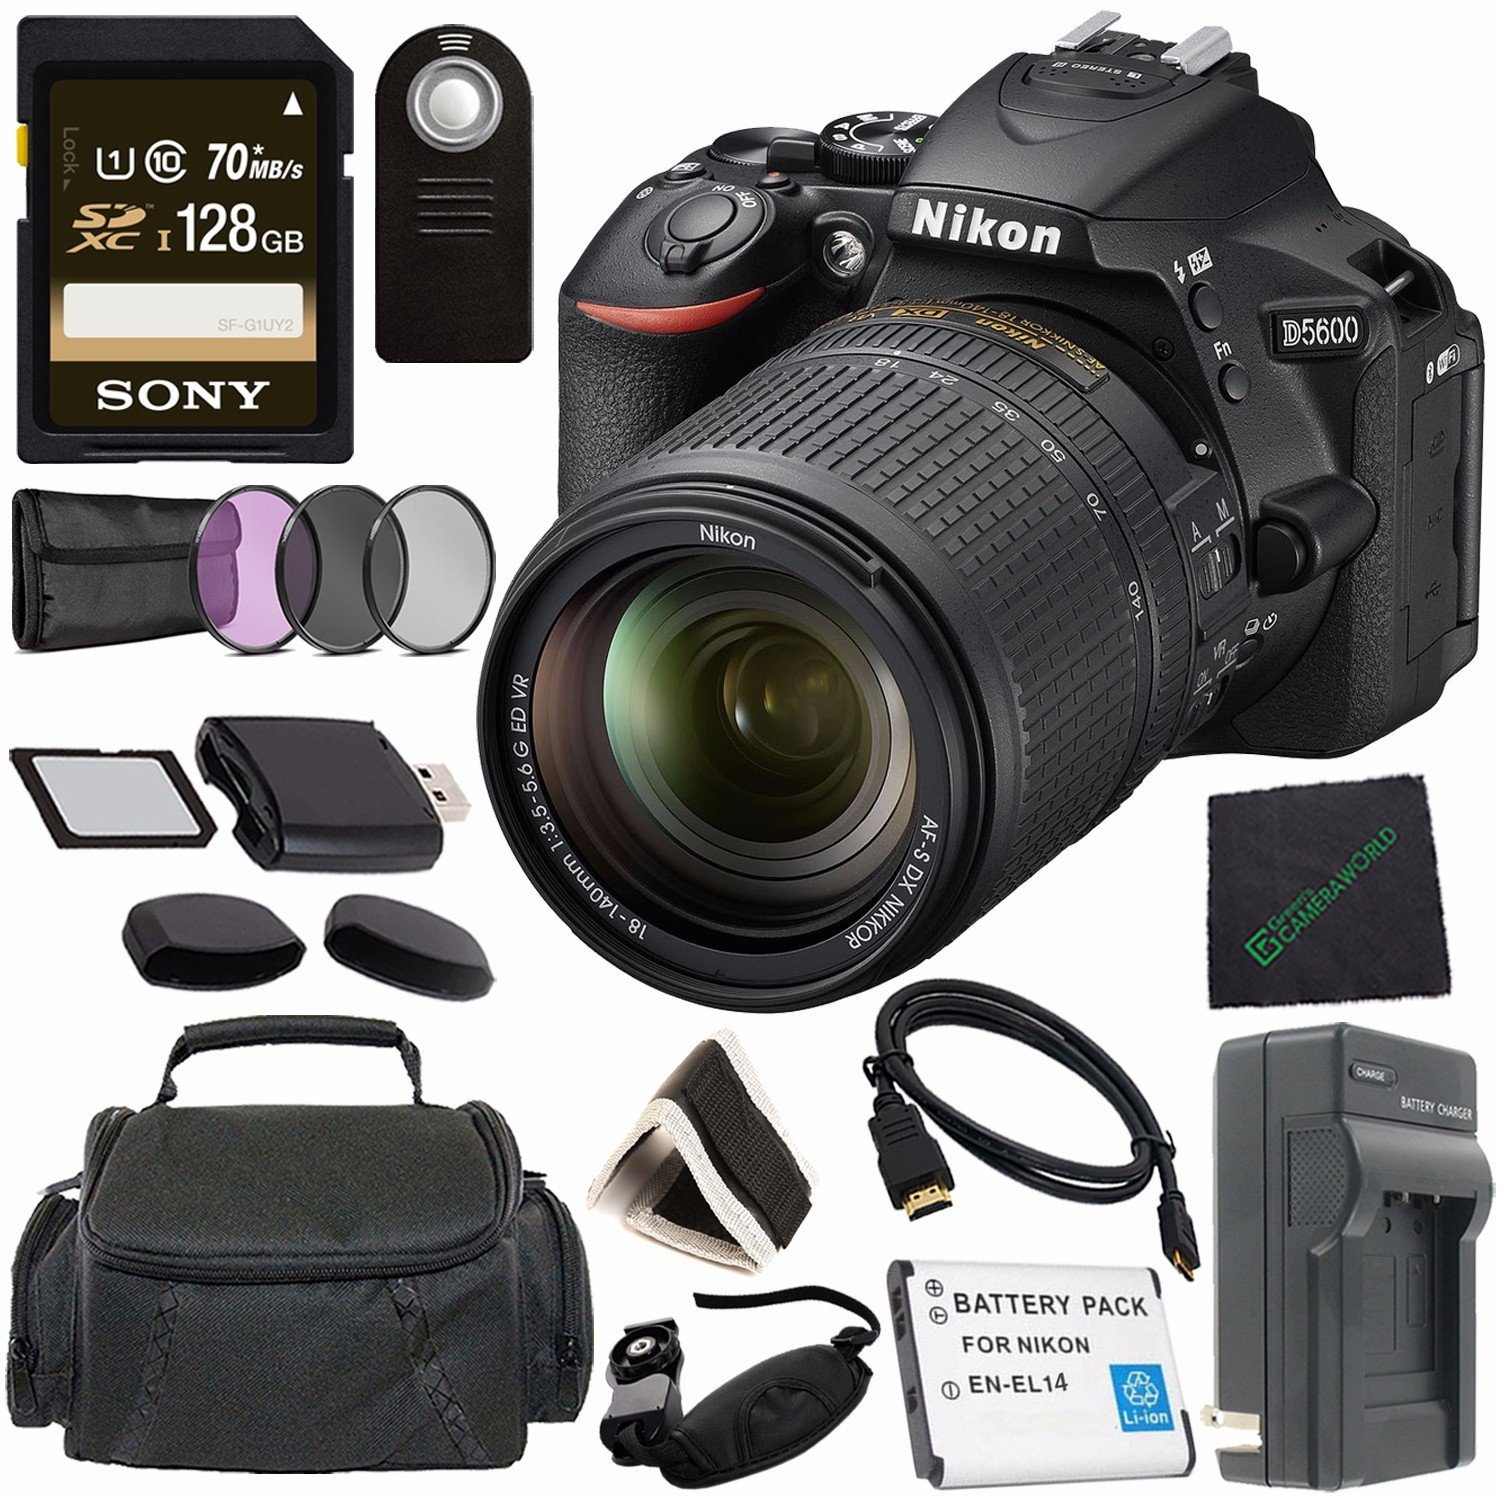 Nikon D5600 DSLR Camera with 18-140mm Lens (Black) 1577 + Lithium Ion Battery + Charger + Sony 32GB SDHC Card + Mini HDMI Cable + Carrying Case + Remote + Memory Card Wallet + Card Reader Bundle